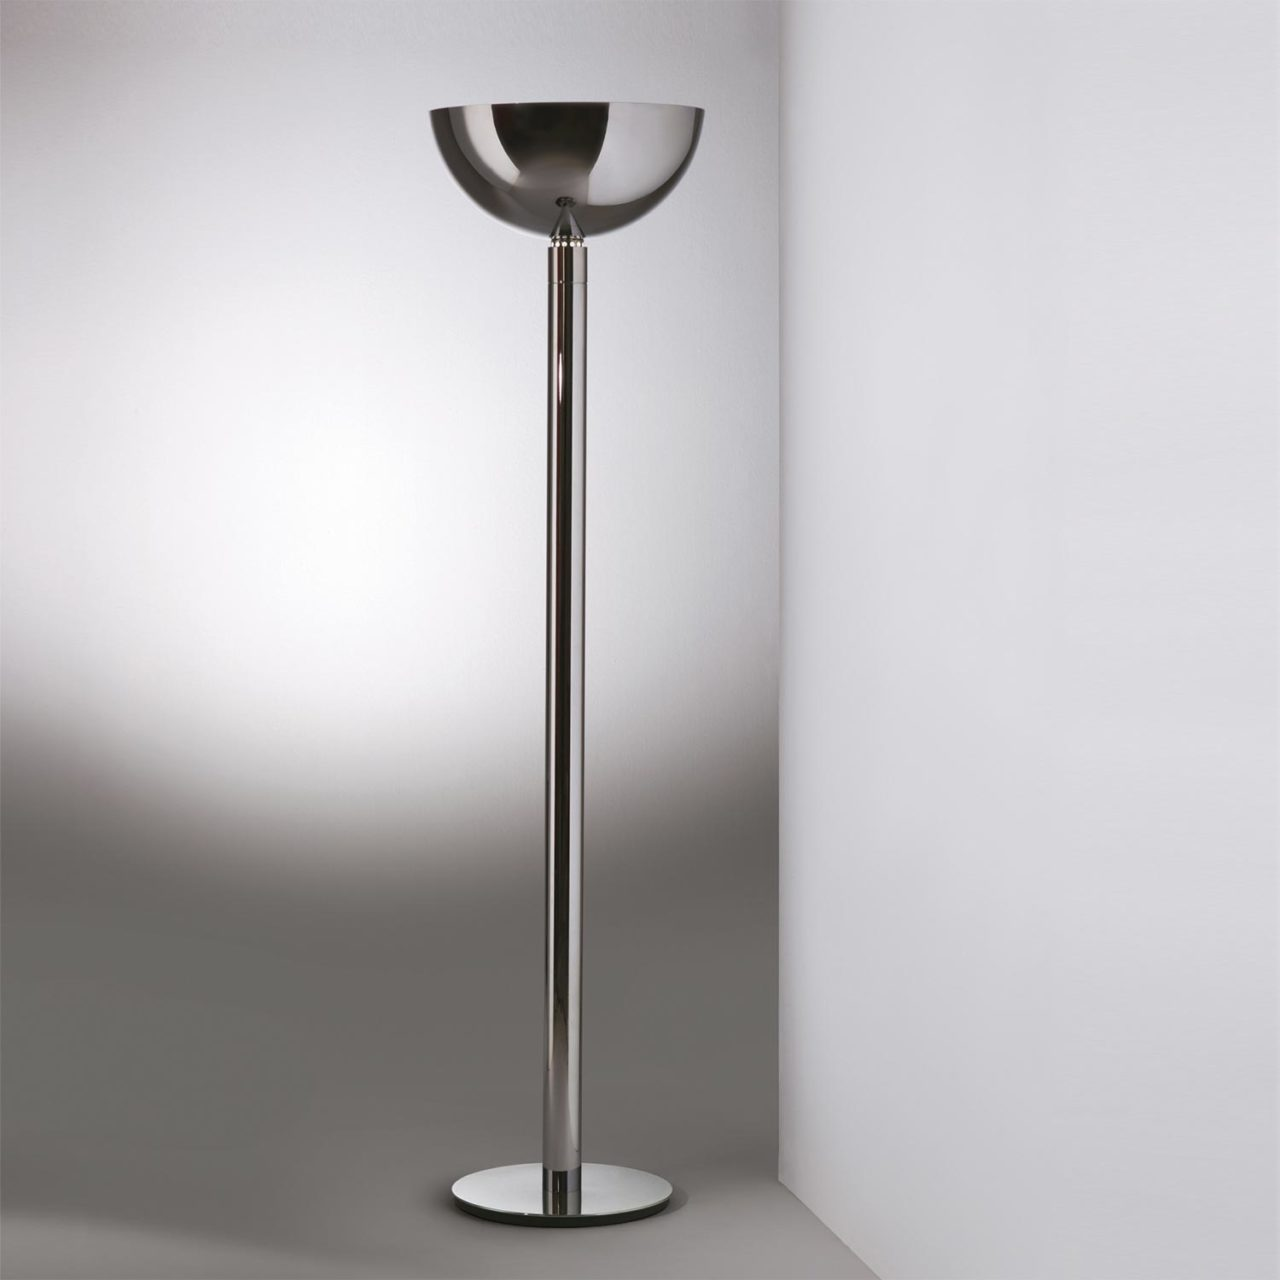 Franco Albini AM2Z Floor Lamp | Nemo Italianaluce